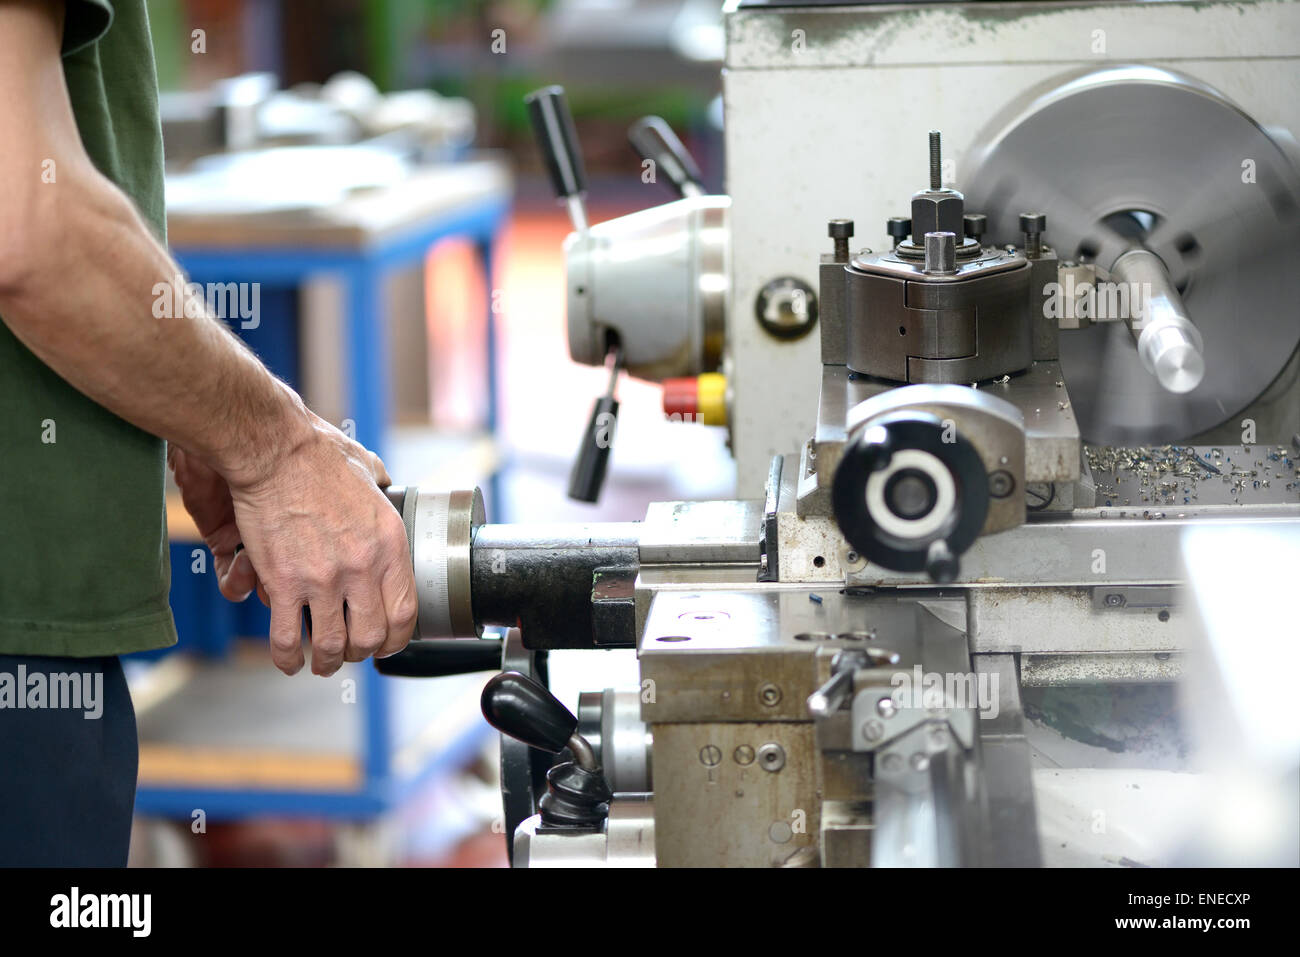 Male blue-collar worker doing manual labor with a lathe, industrial machine tool used in metalworking - Stock Image